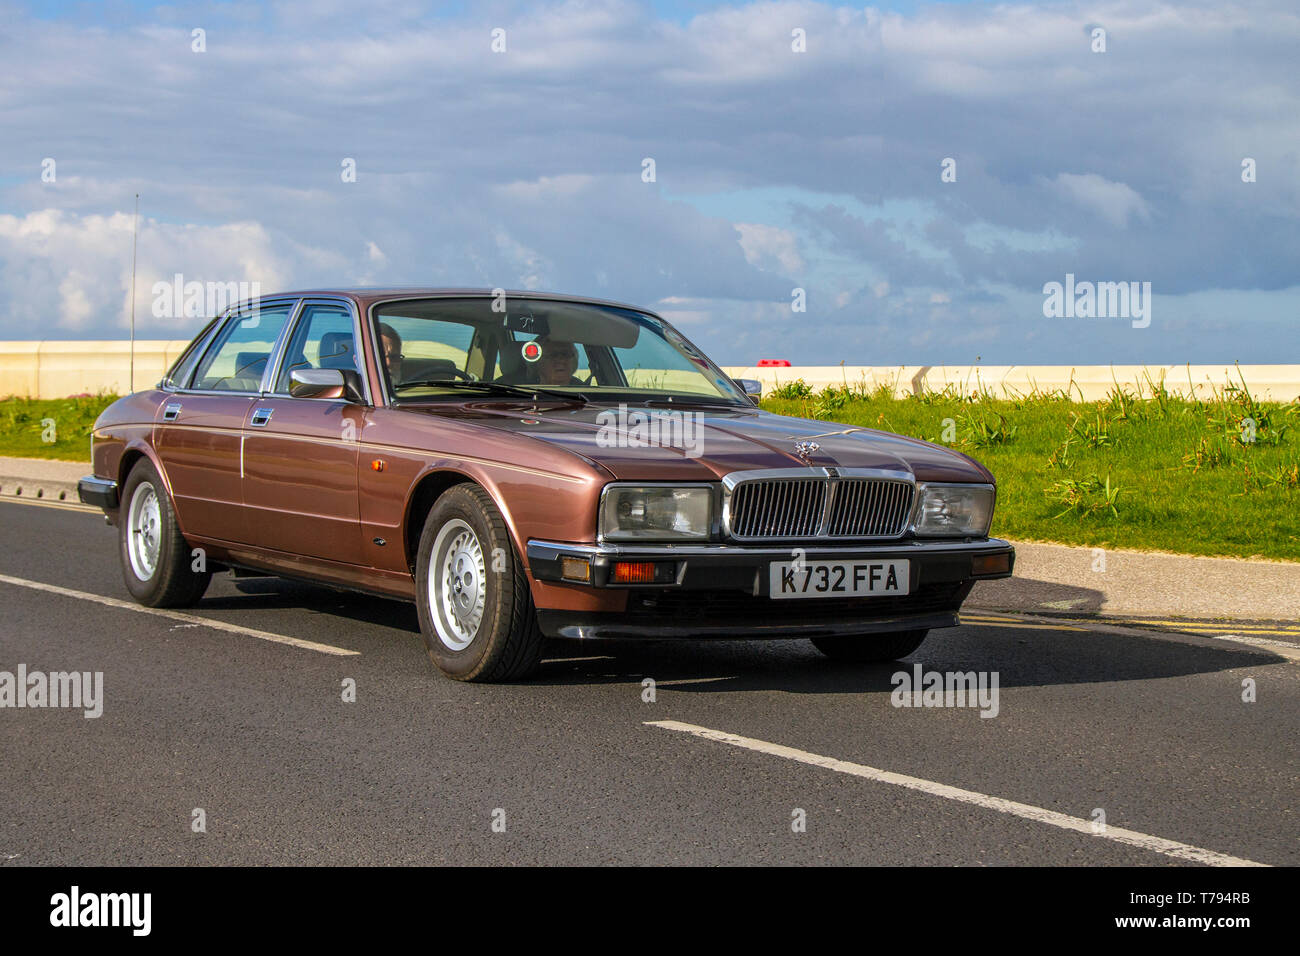 K 732 FFA 992 Jaguar Sovereign 4.0 at Cleveleys Spring Car Show at Jubilee Gardens in 2019. A new location for a Classic Vehicle show from Blackpool Vehicle Preservation Group (BVPG). - Stock Image